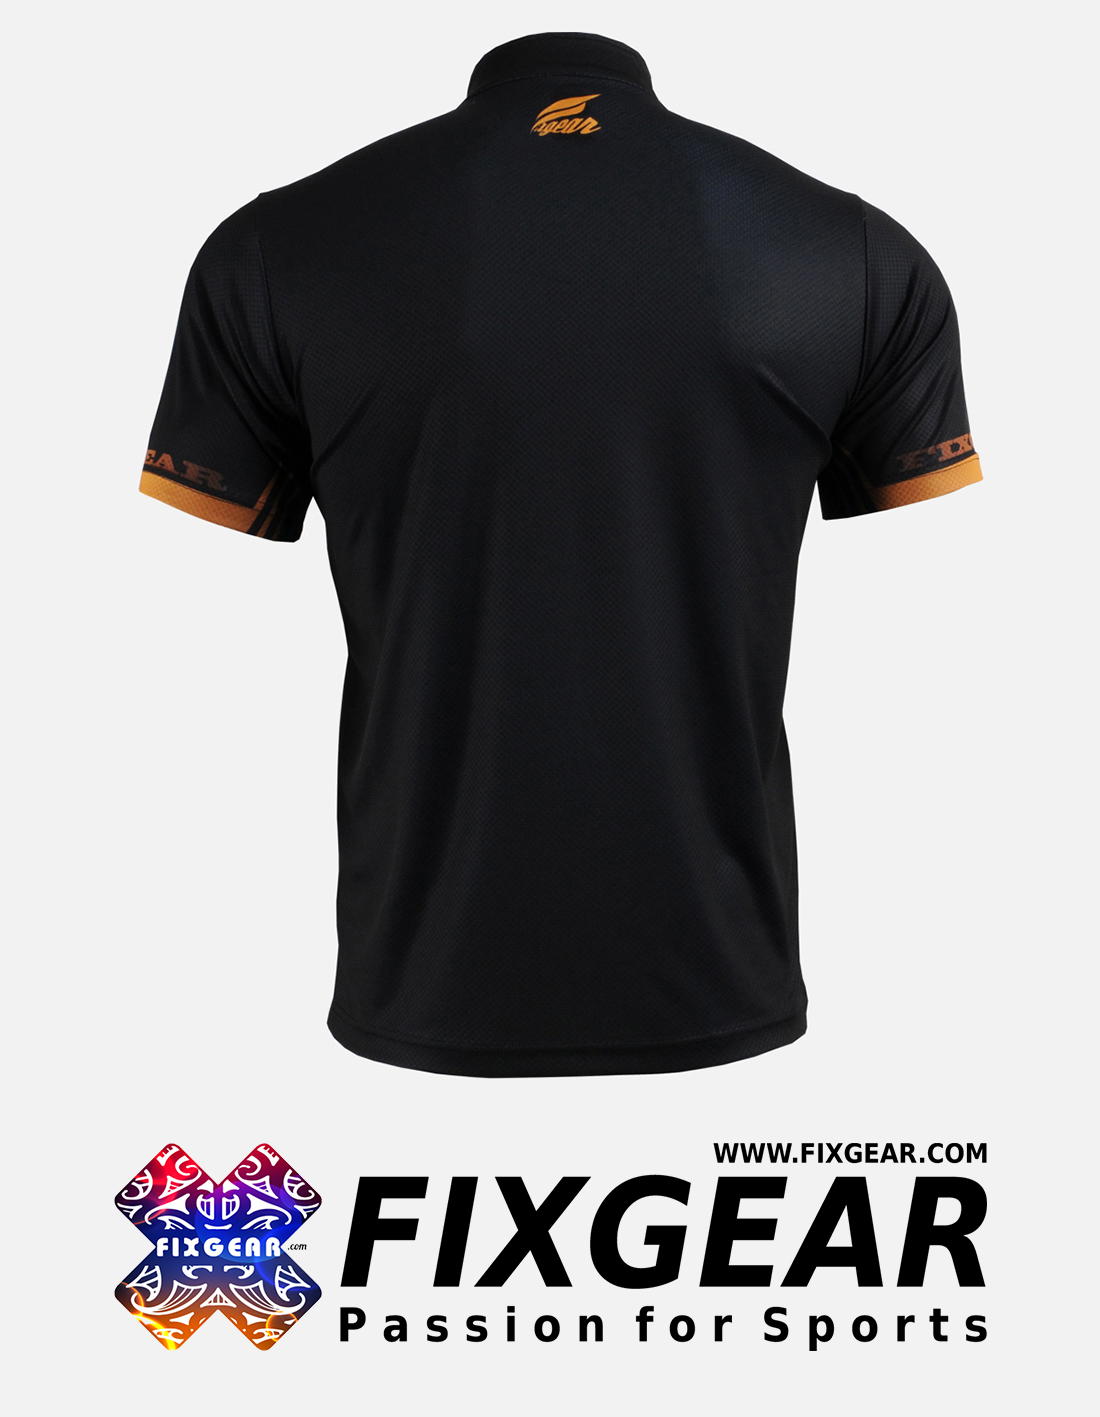 FIXGEAR BM-6002 Casual Men's short sleeve jersey 1/4 zip-up T-Shirt